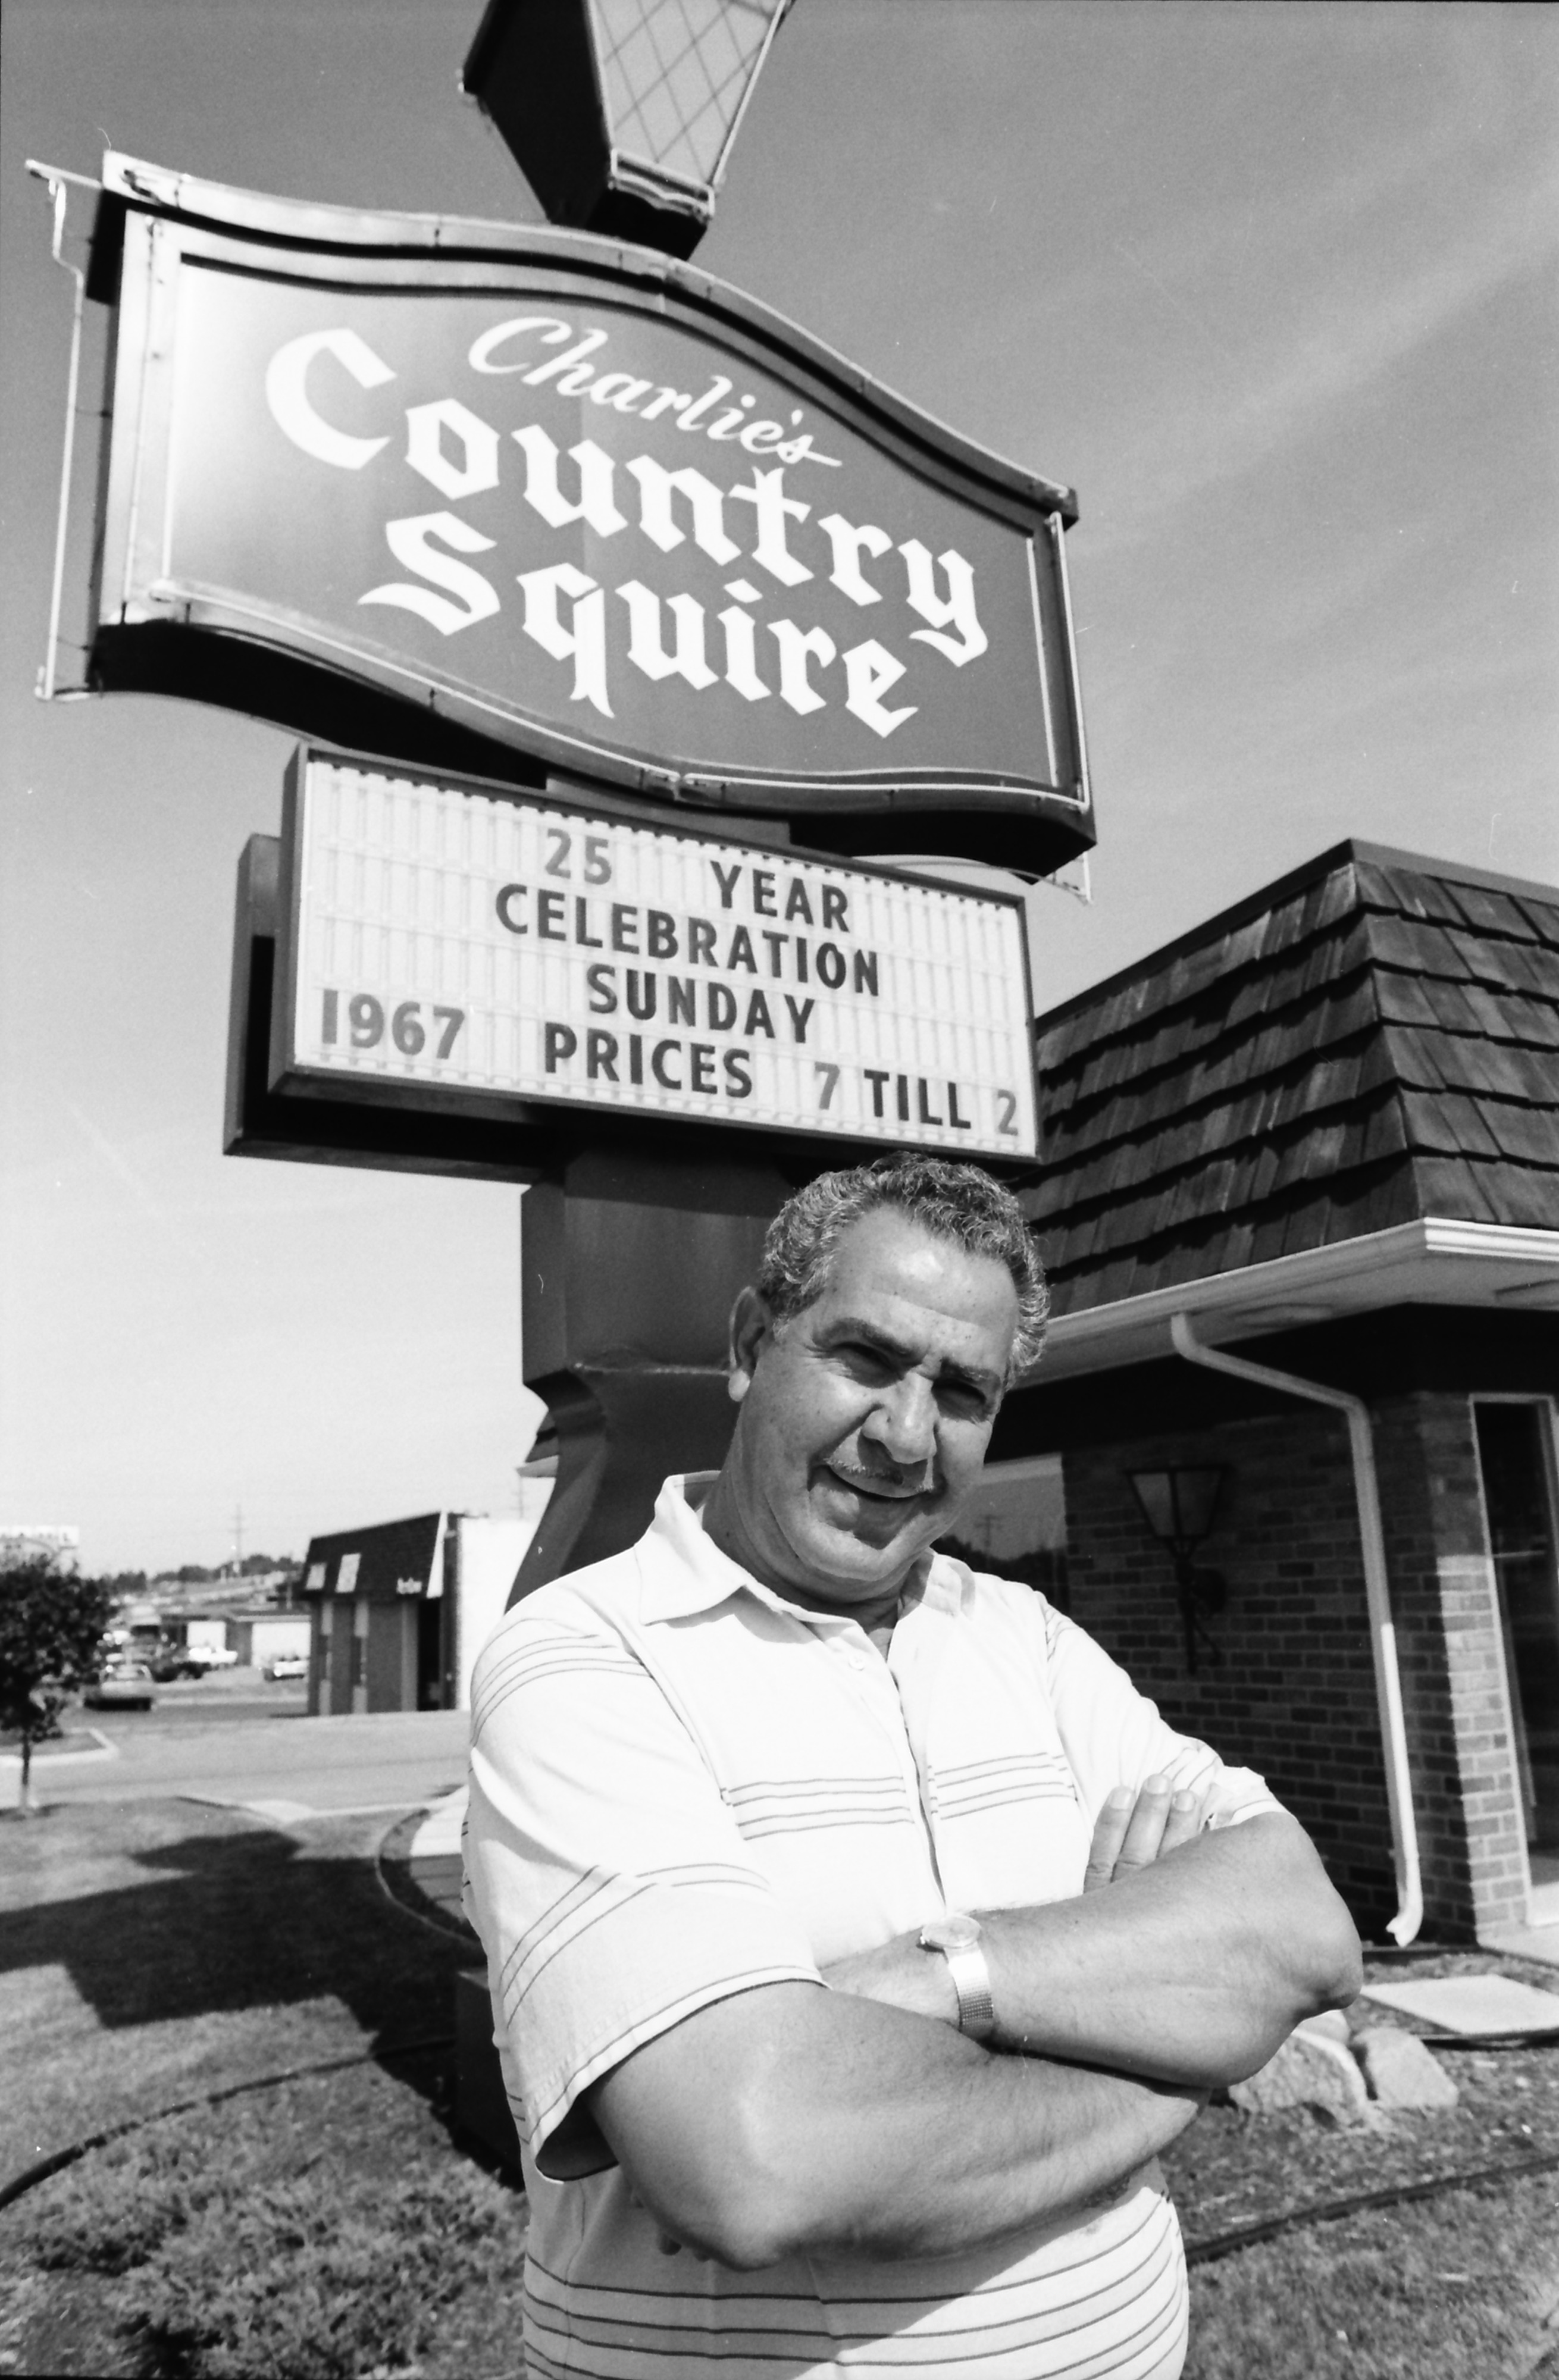 Charlie Philippou Celebrates 25 Years at Country Squire, June 1992 image